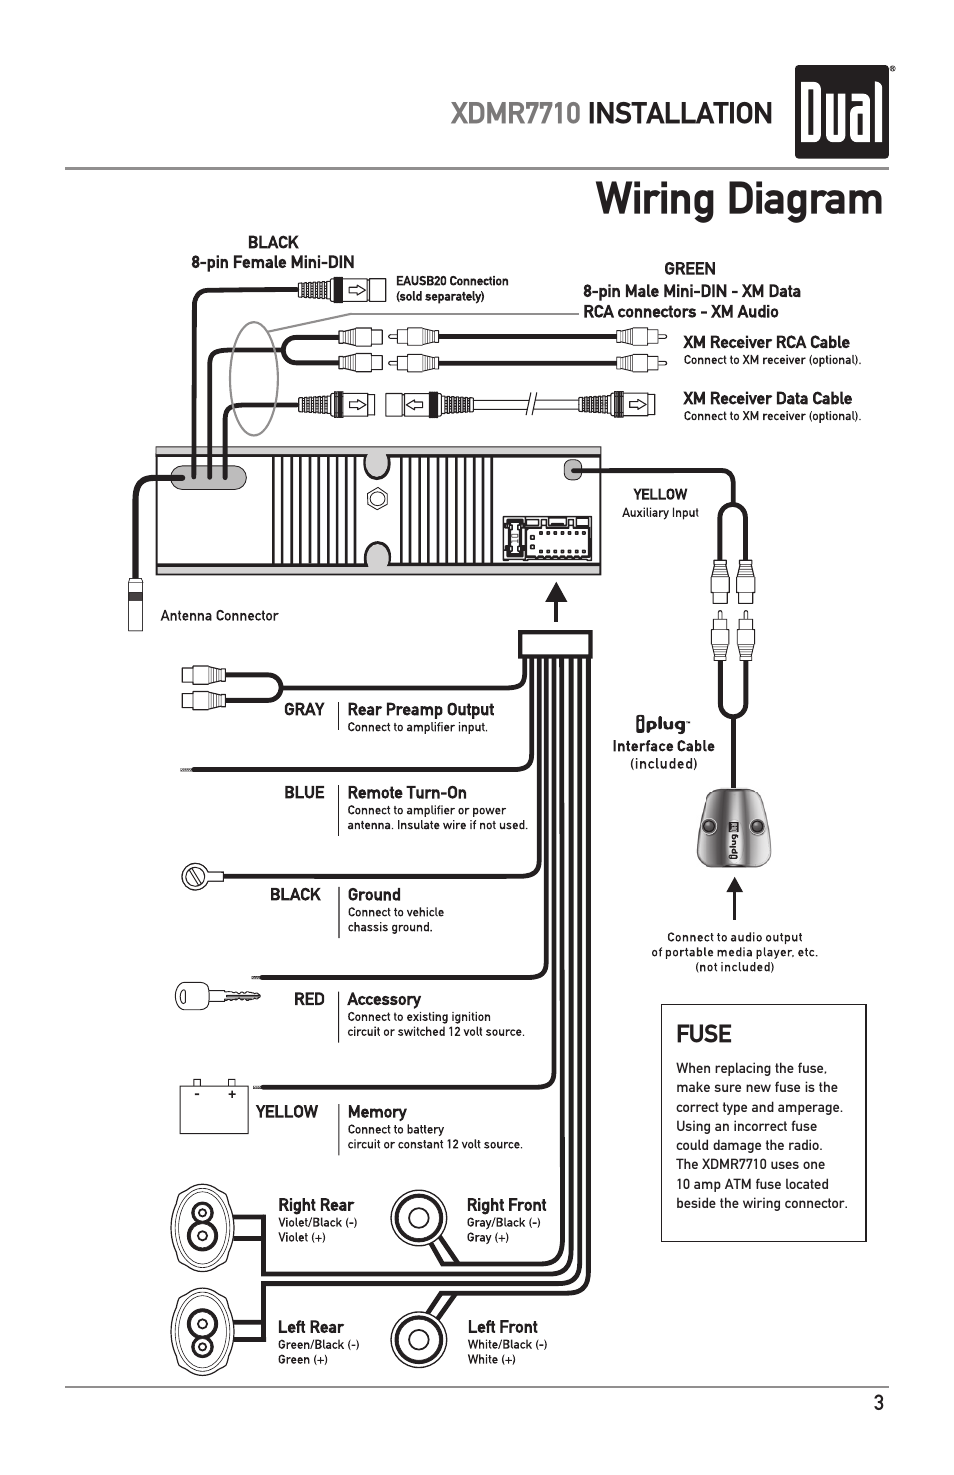 Wiring diagram | Dual IPLUG XDMR7710 User Manual | Page 3 / 24